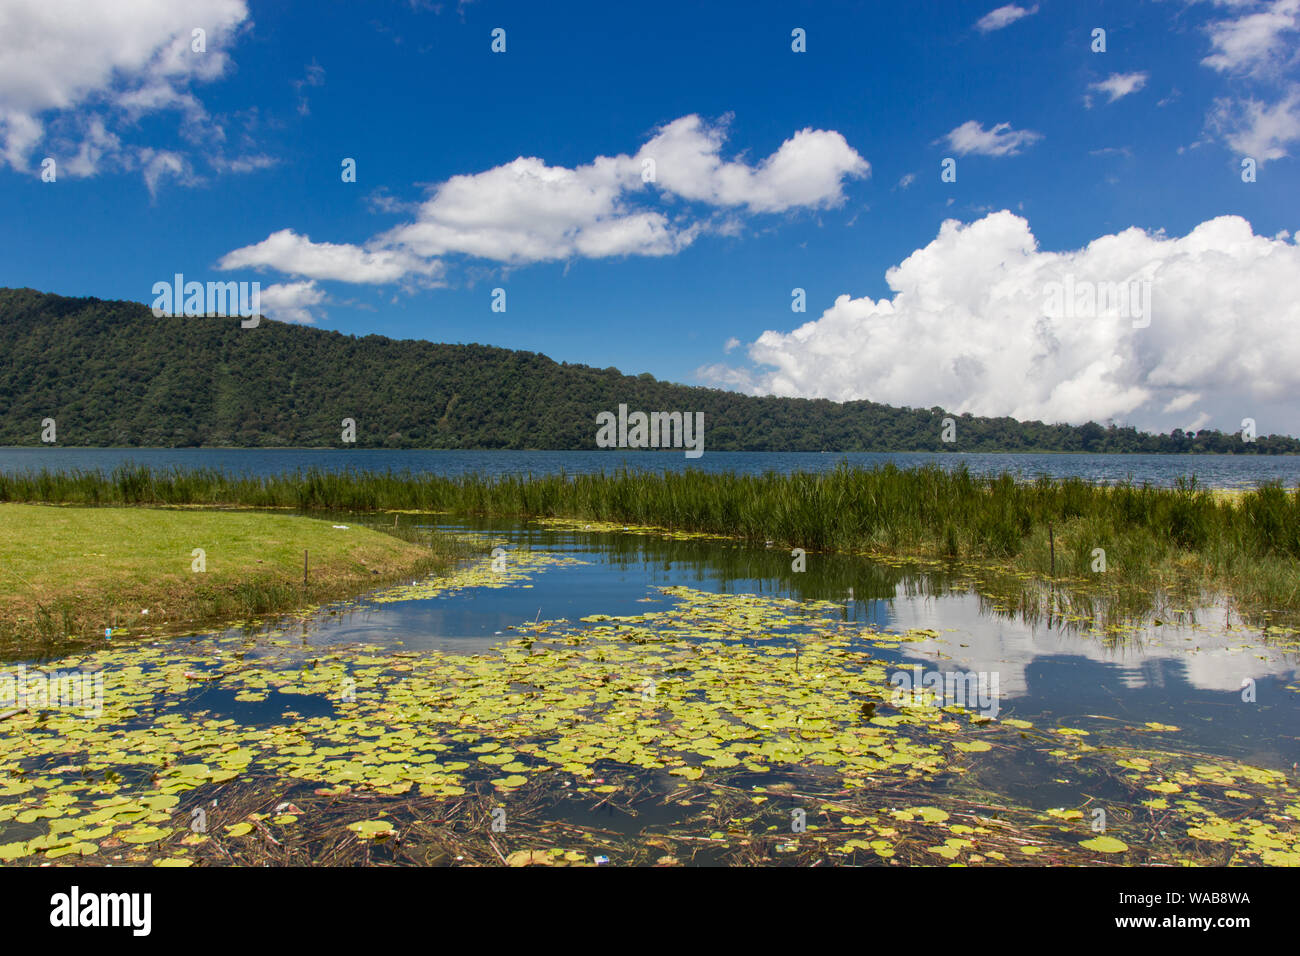 Pura Ulun Danu Bratan lake in Bali. The lake is a popular tourist attraction. Lake with blue sky in the background. Stock Photo